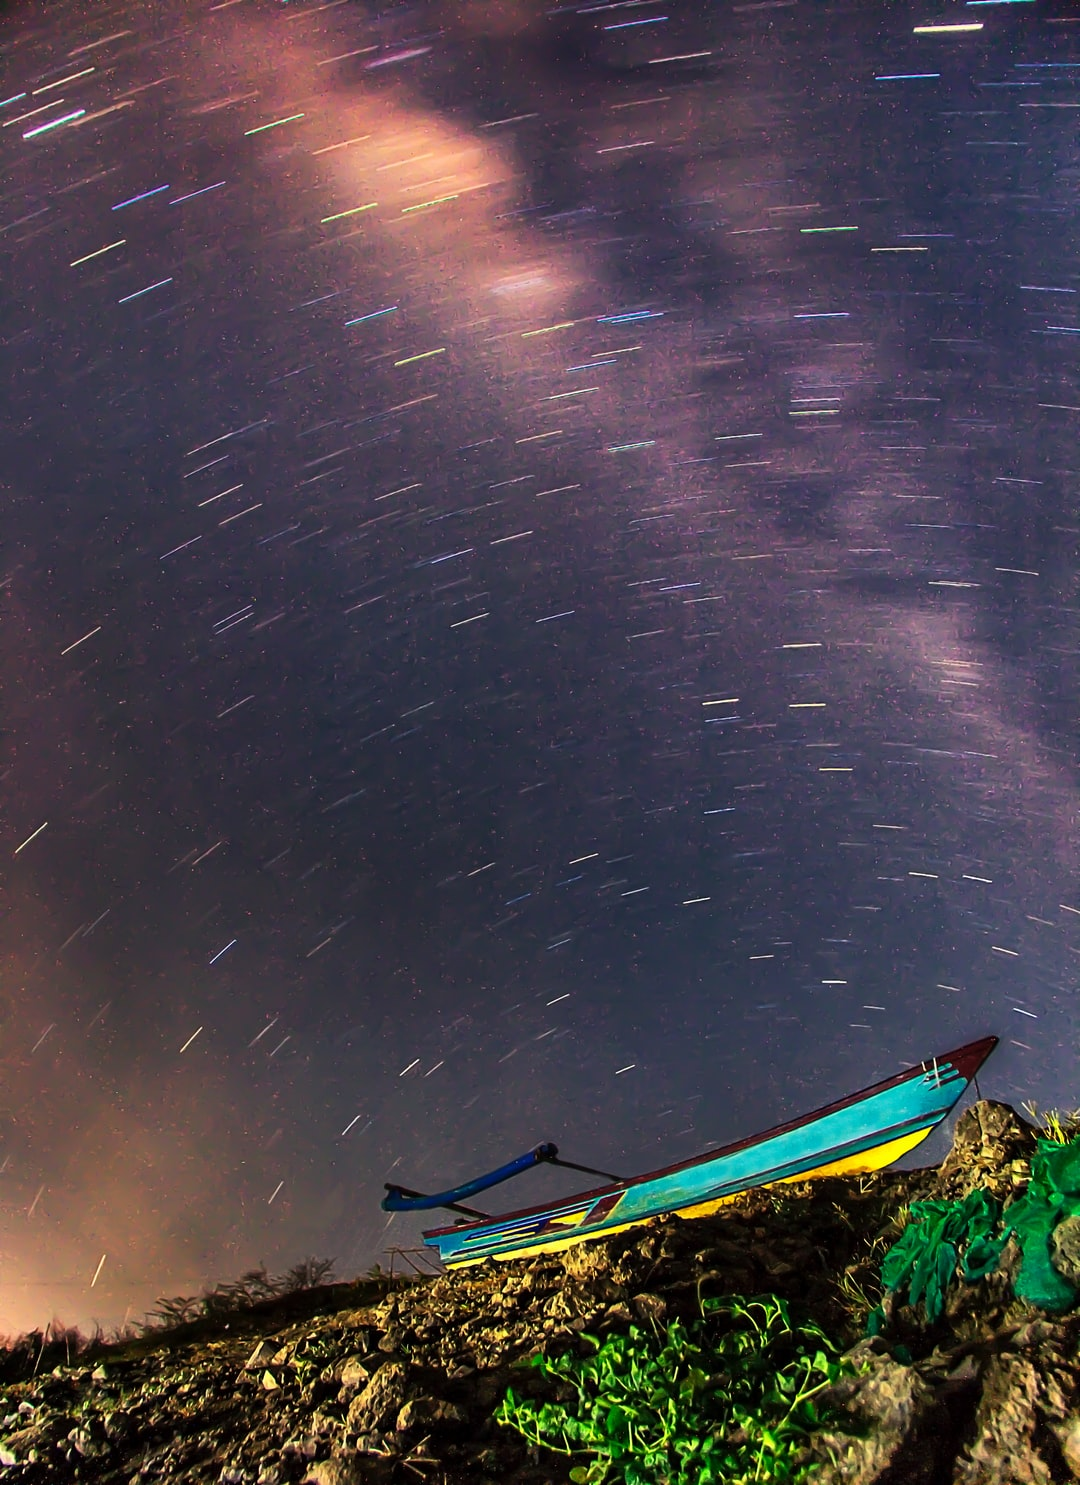 Display of the Star trails and Milky Way Galaxy that appears above that boat. Long exposure photography